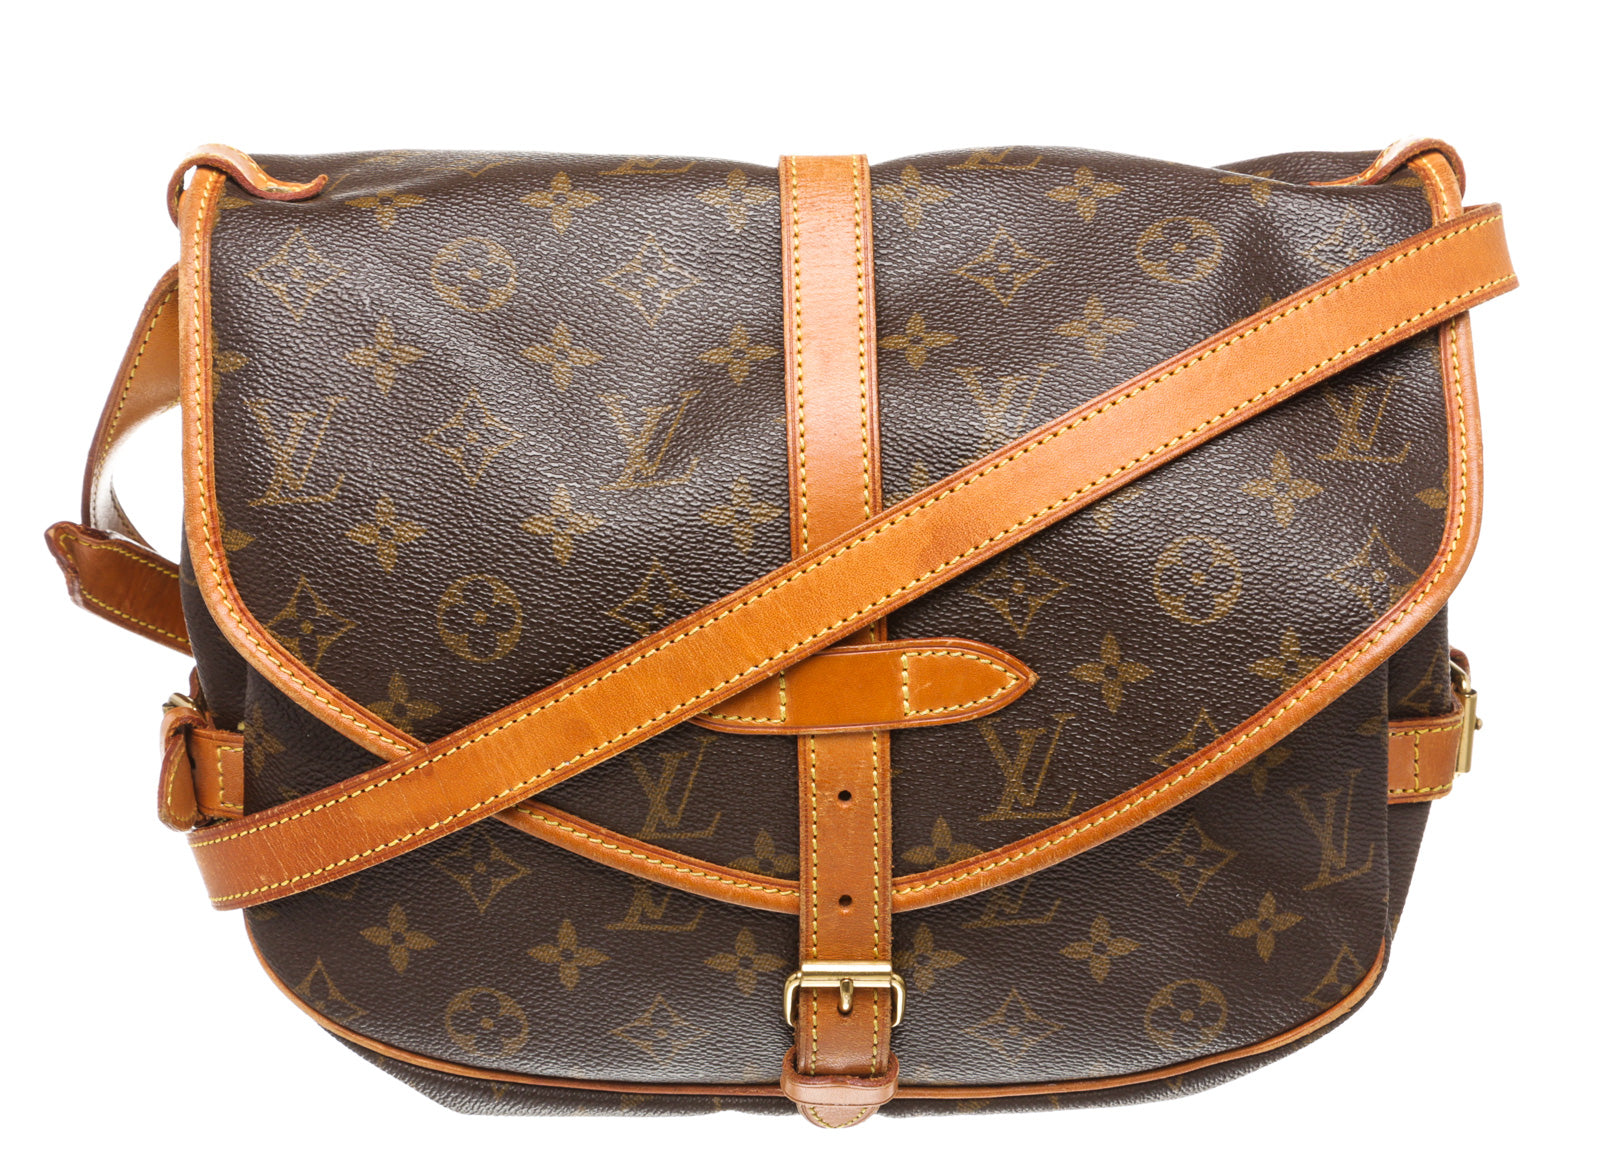 Louis Vuitton Monogram Canvas Saumur 30 Messenger Bag